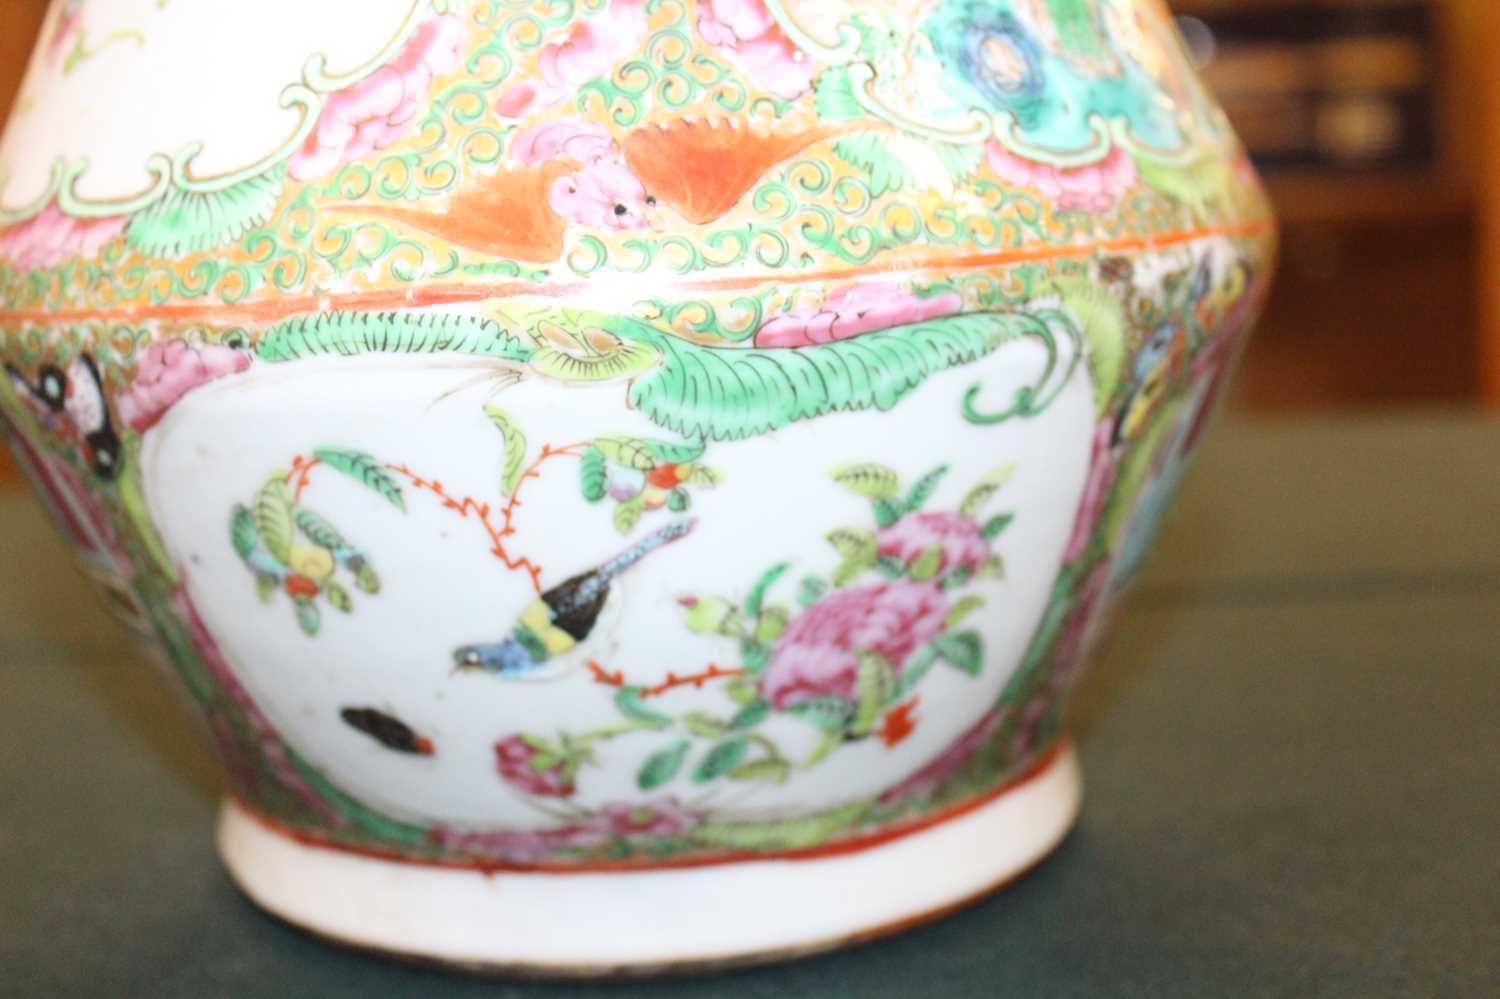 A 19th century Chinese Canton famille rose vase, enamel decorated with ceremonial figure scenes - Image 10 of 18